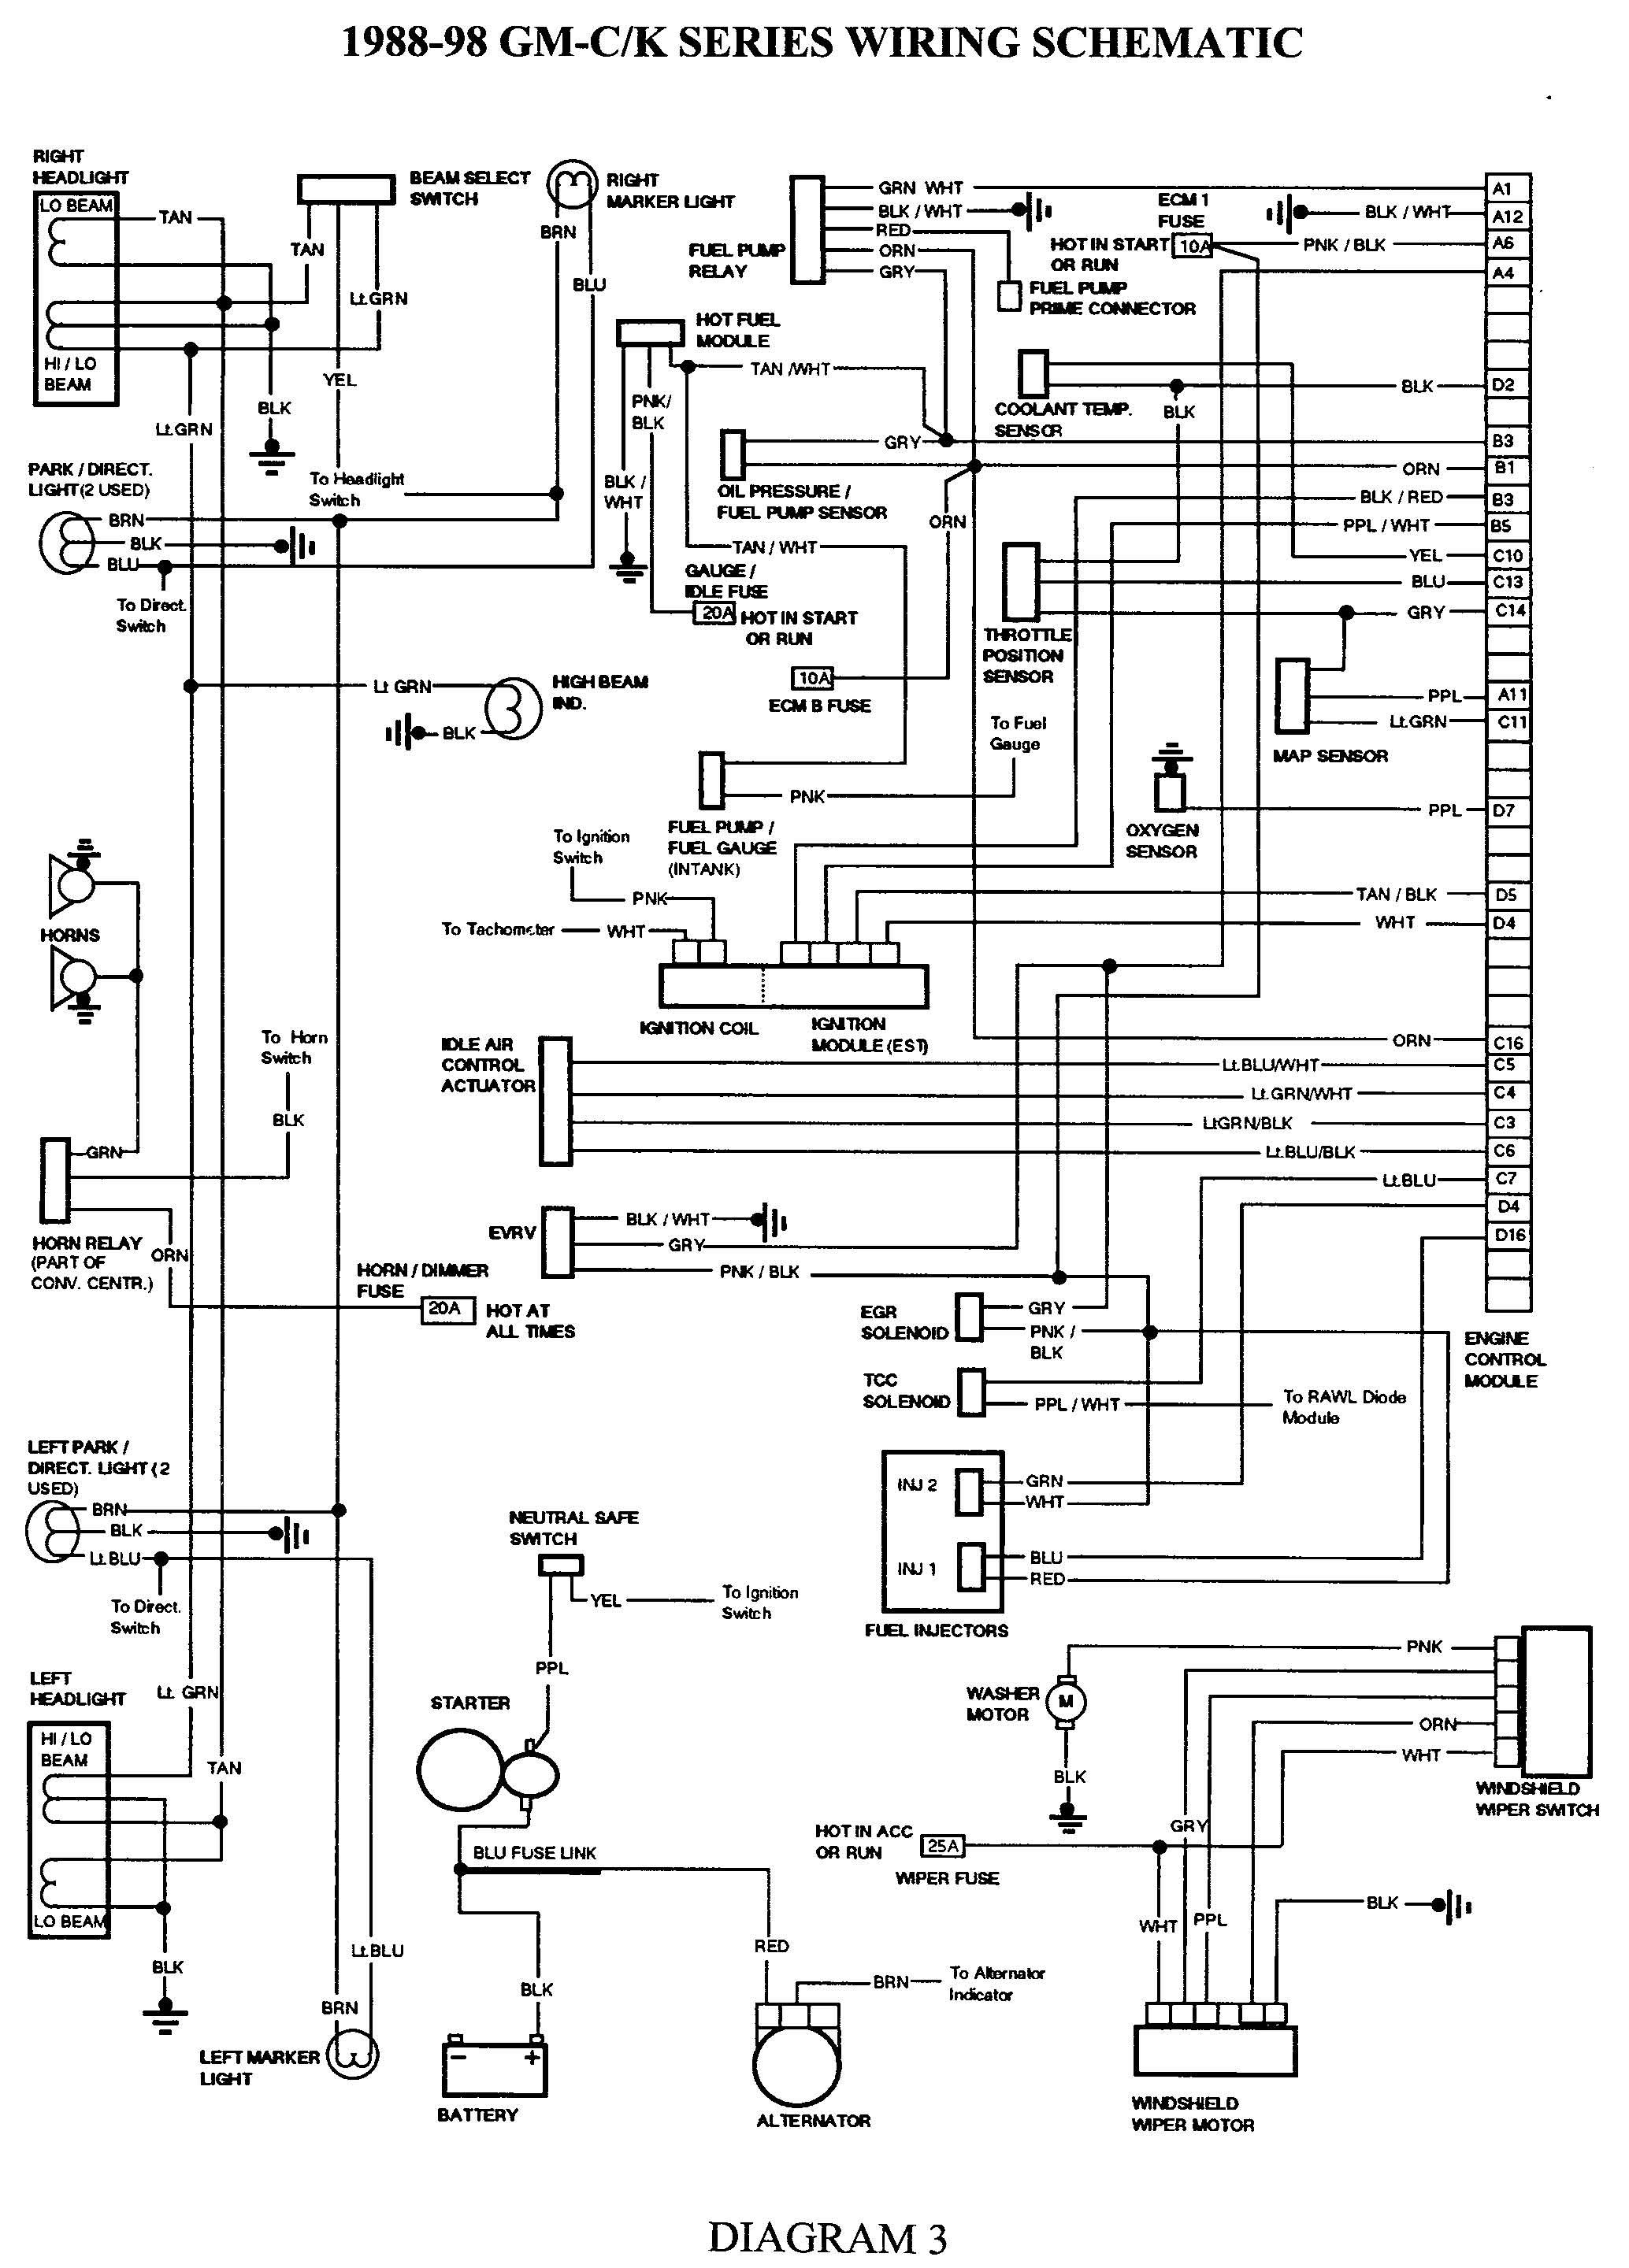 gmc truck wiring diagrams on gm wiring harness diagram 88 98 kc 1994 honda accord wiring diagram 2002 vw beetle wiper relay location [ 2068 x 2880 Pixel ]